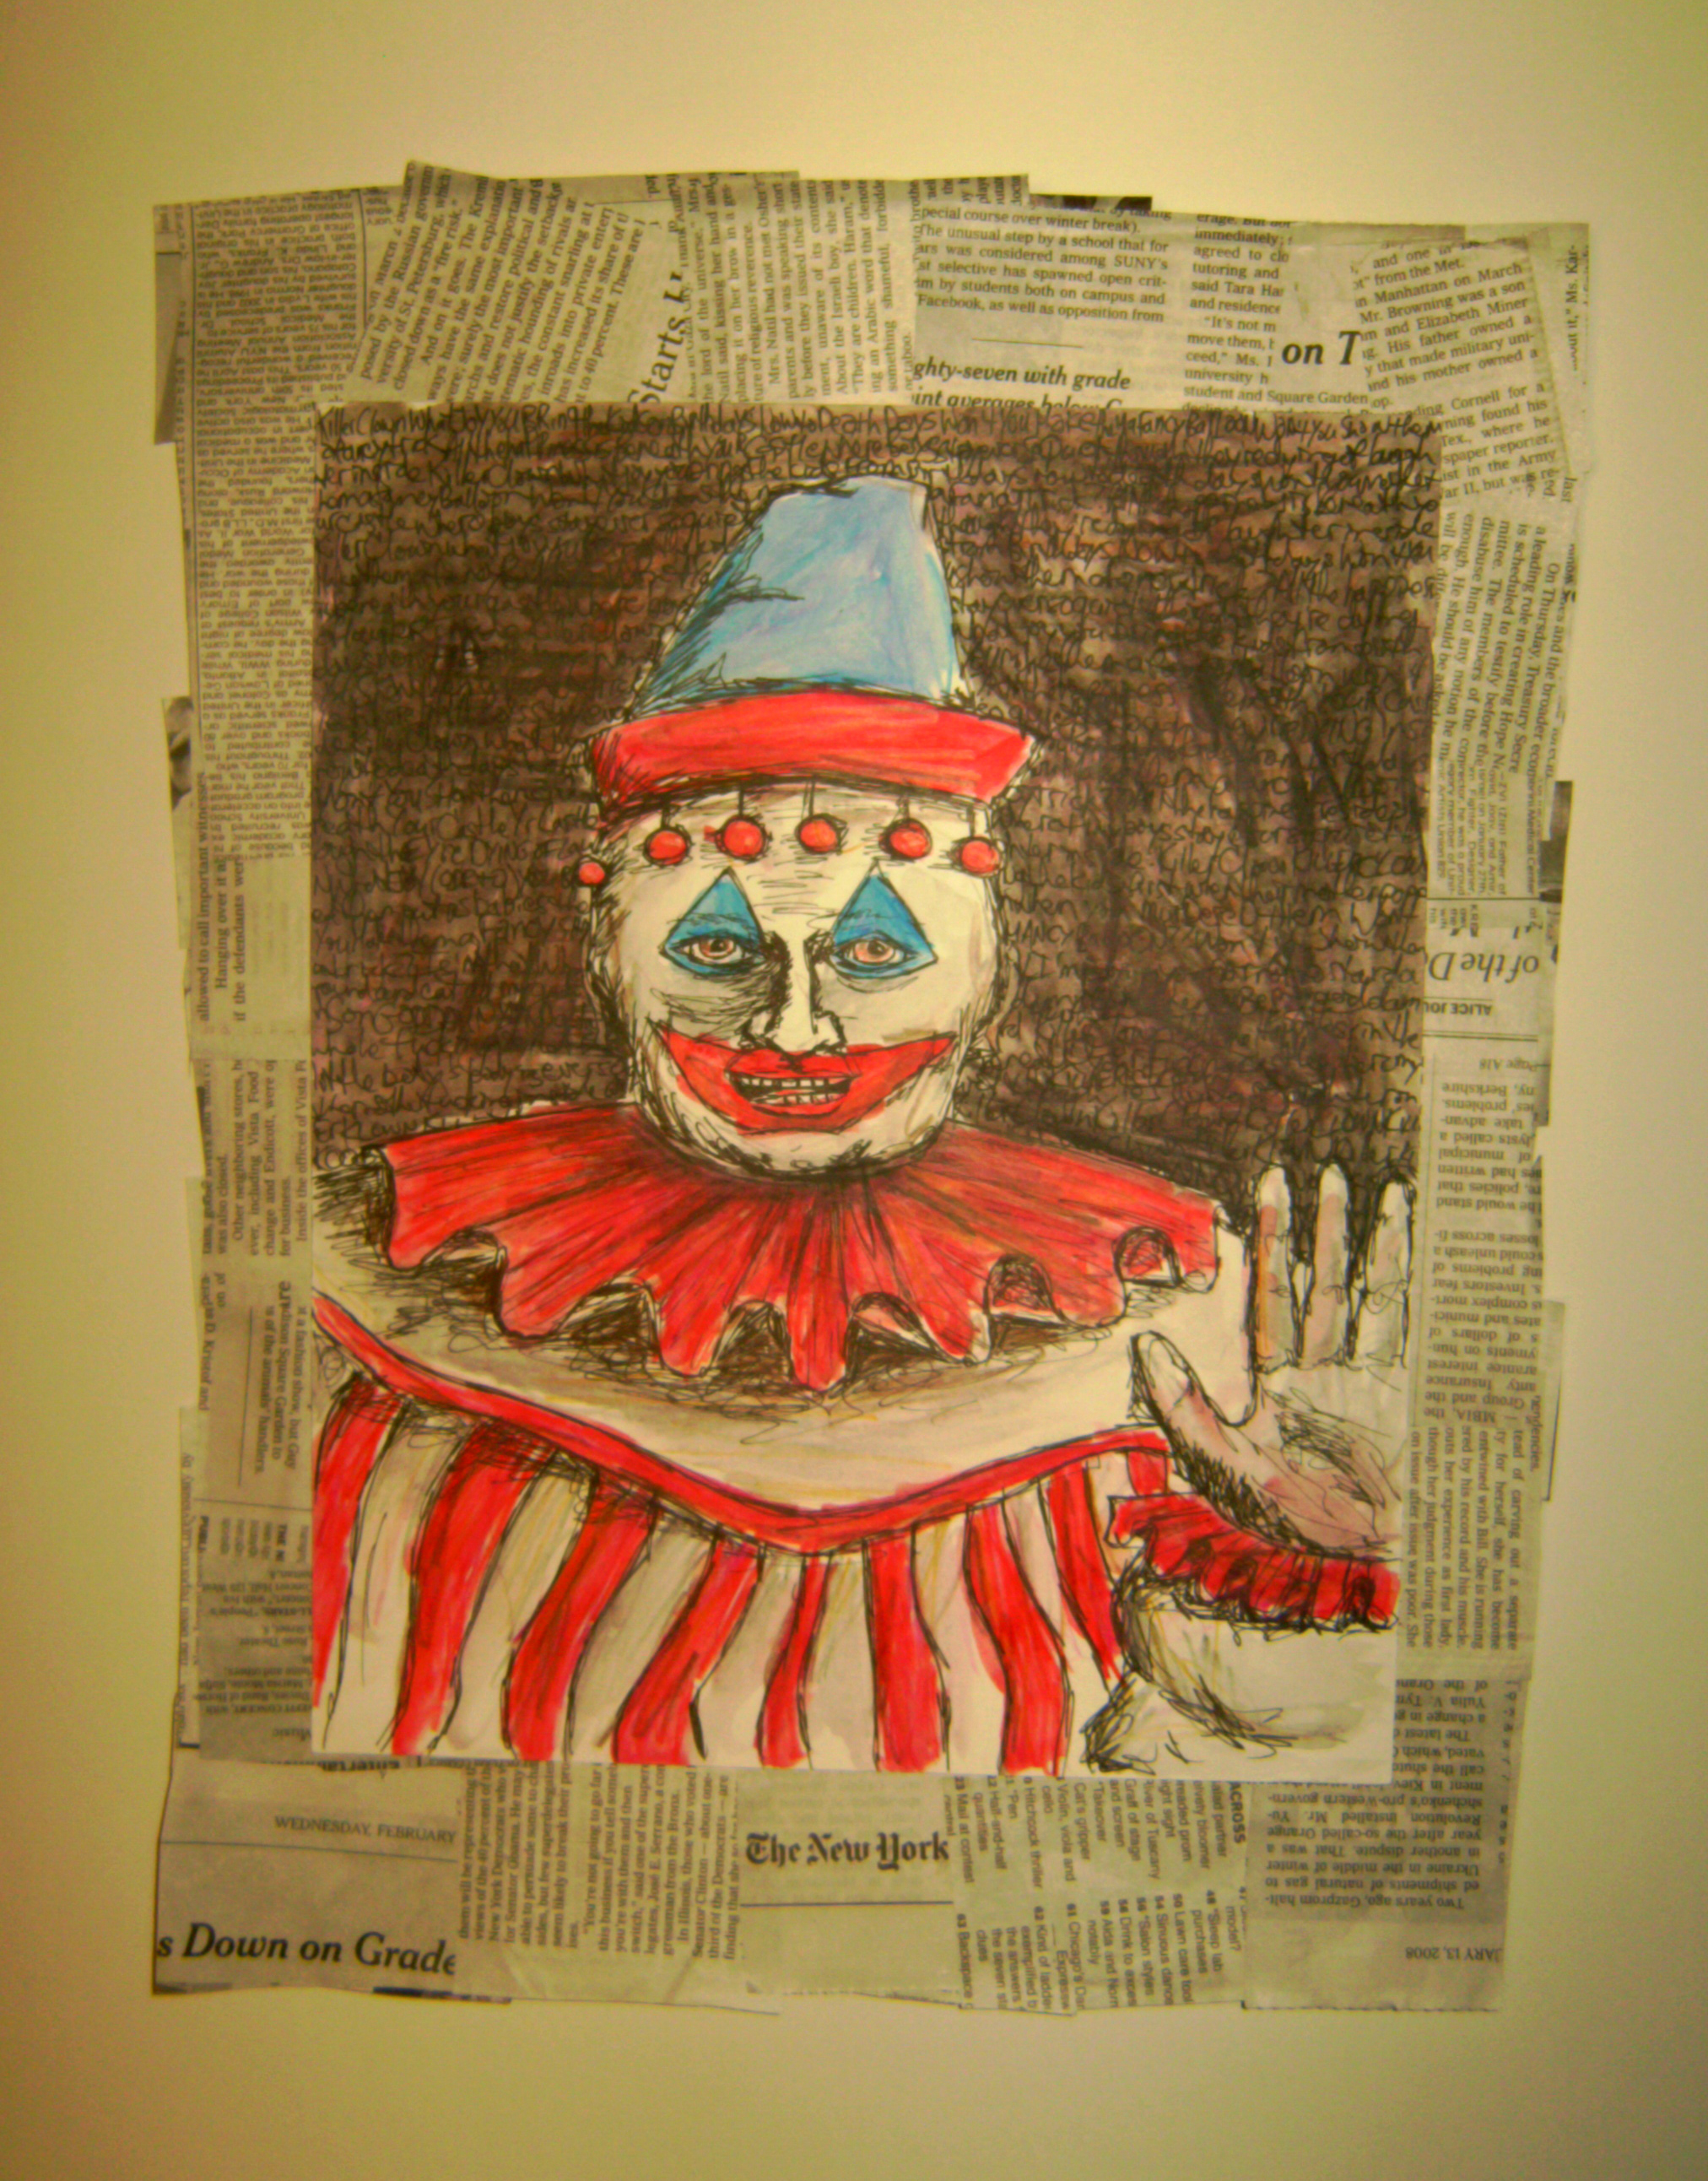 john wayne gacy John wayne gacy jr (march 17, 1942 - may 10, 1994) was an american serial killer and rapist he sexually assaulted, tortured and murdered at least 33 teenage boys and young men between 1972 and 1978 in cook county, illinois (a part of metropolitan chicago.